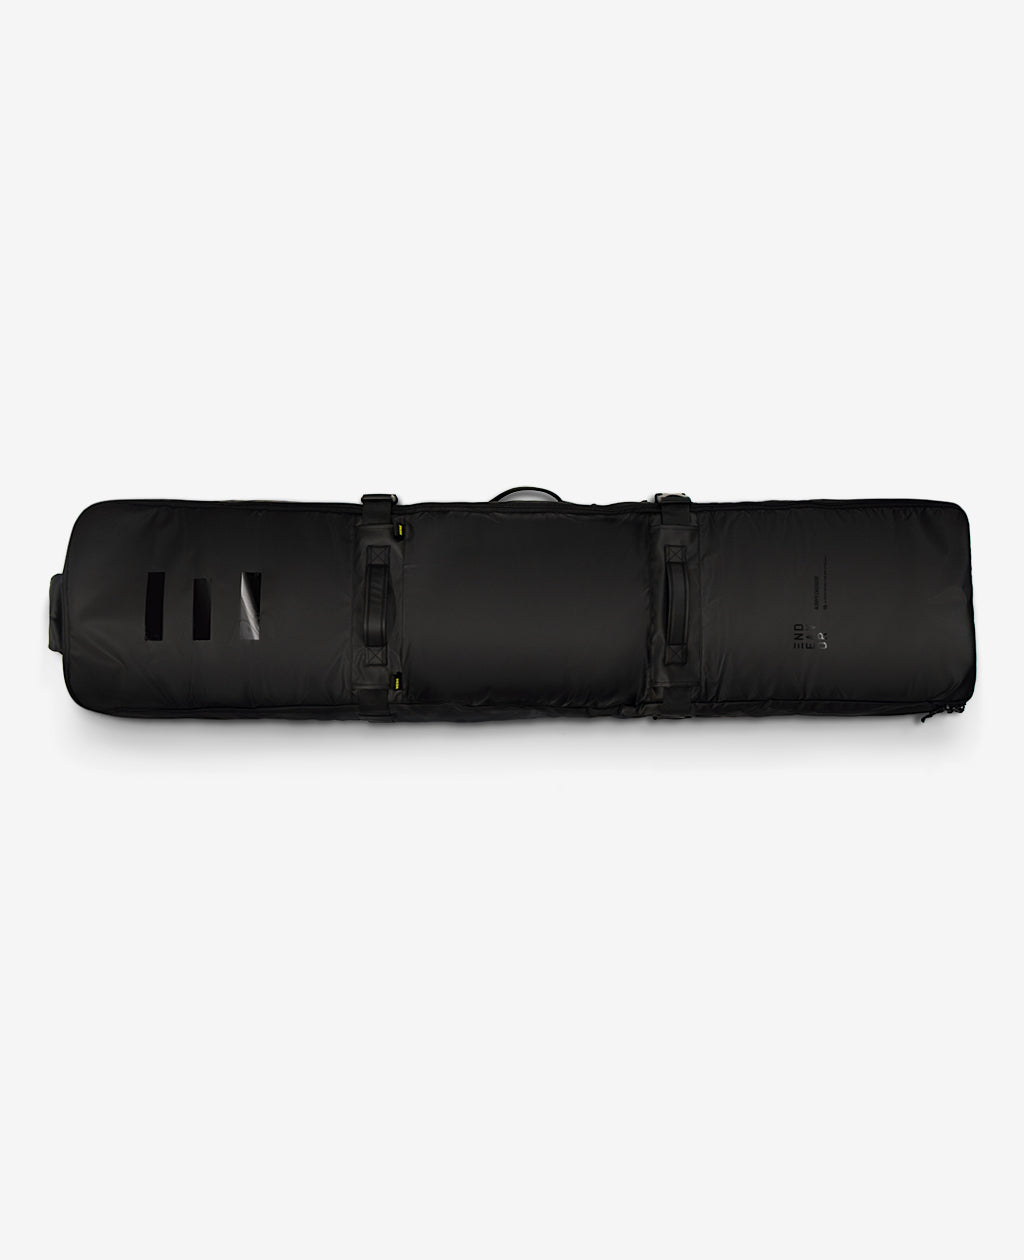 Endeavor Utility Board Bag